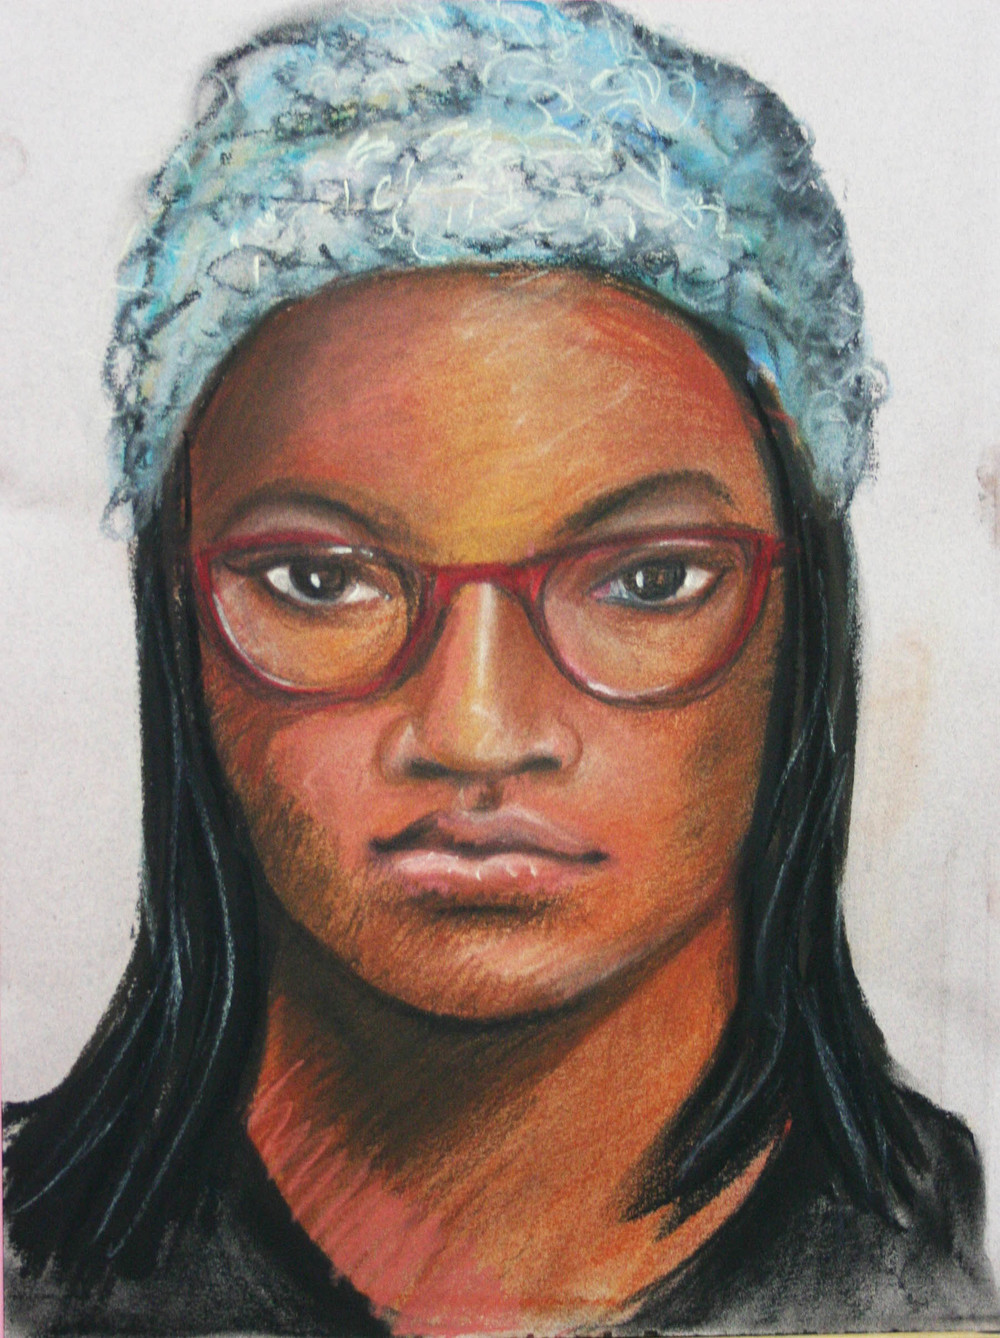 Casandra Dracup did this 2-hour pastel drawing.